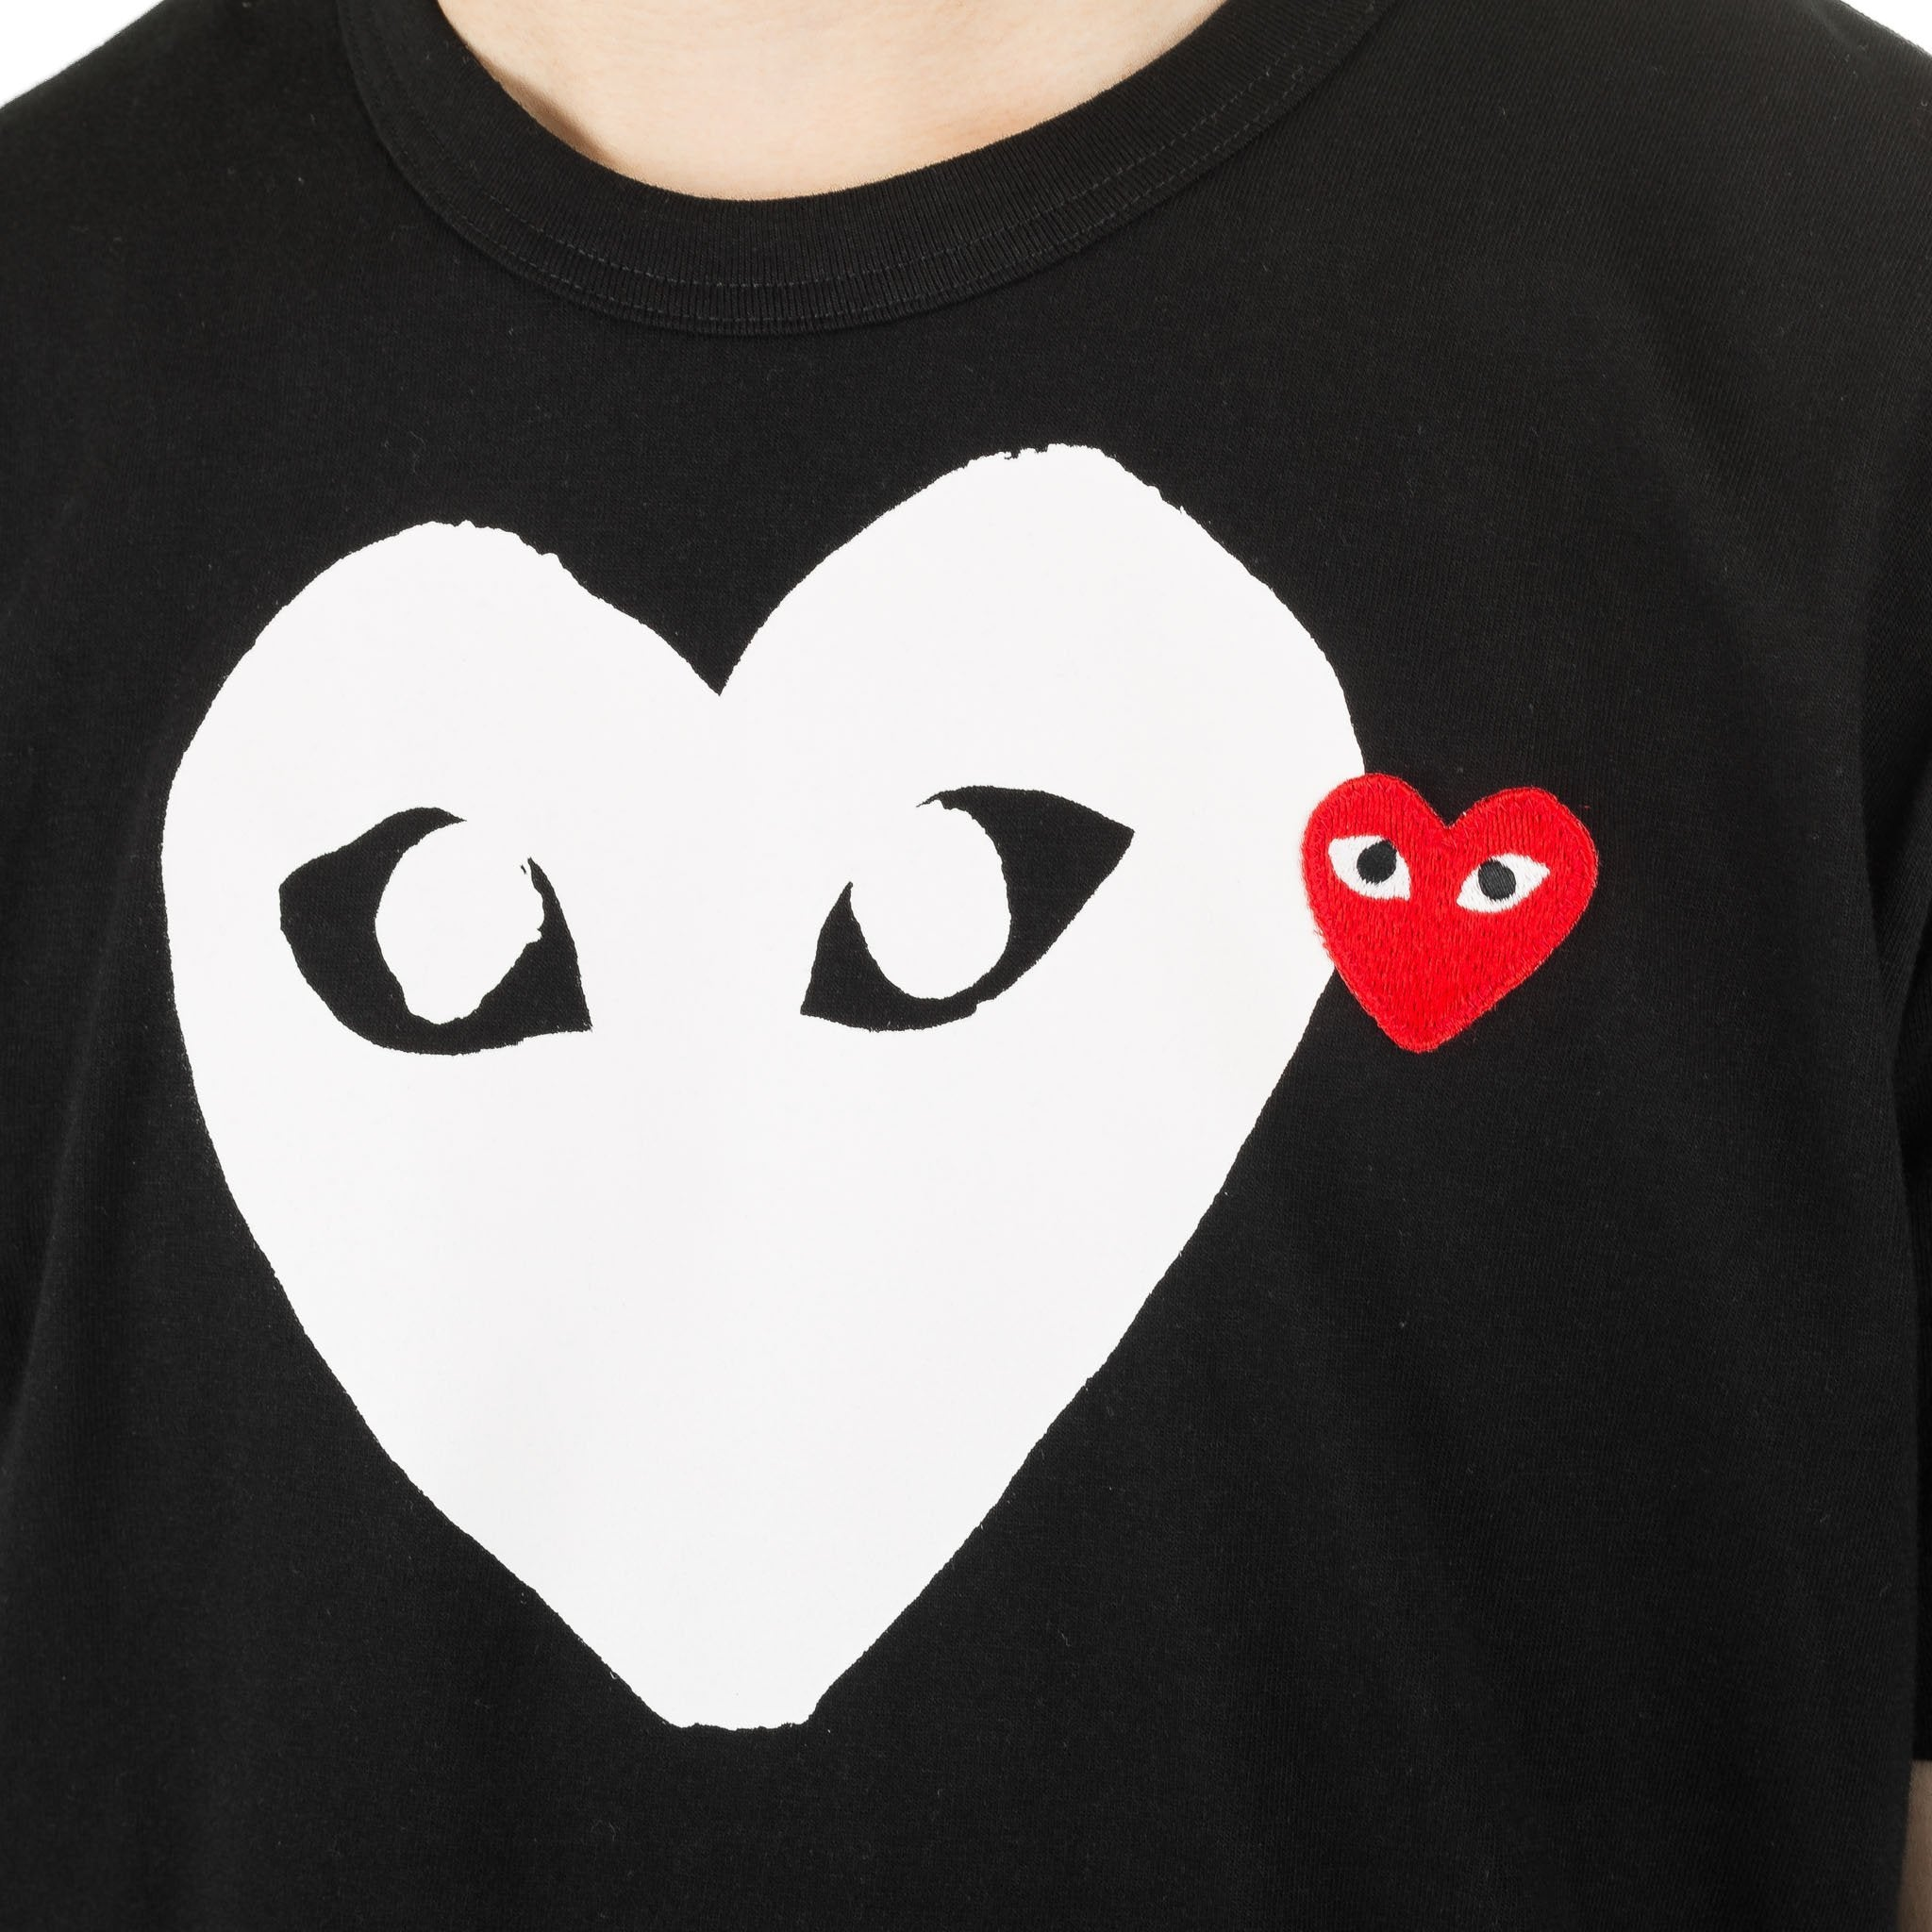 DOUBLE HEART WHITE PRINT AZ-T116-051-1 Tee Black